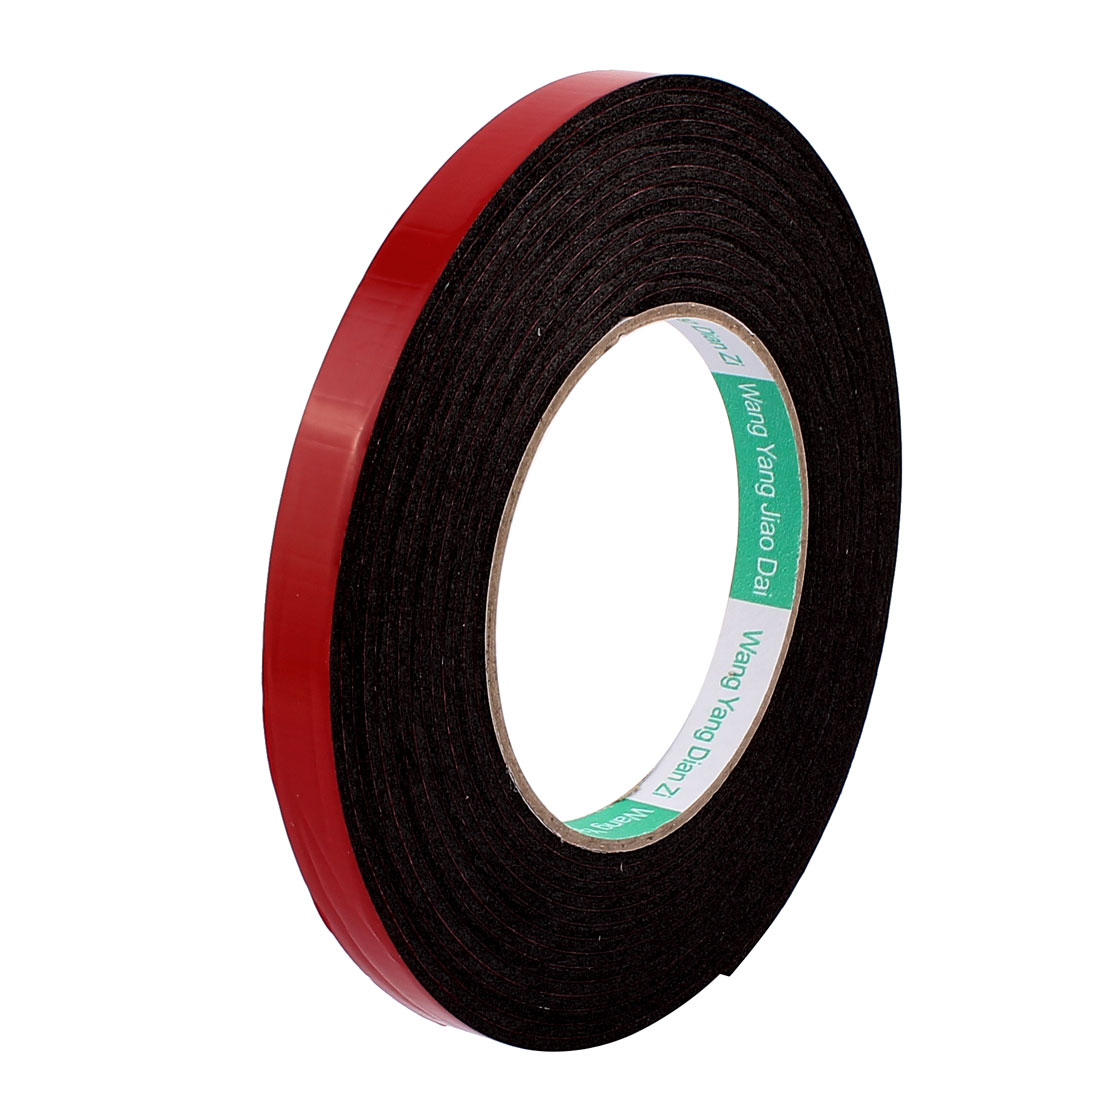 Unique Bargains Black Strong Double Sided Adhesive Tape Sponge Tape 12MM Width 5M Long